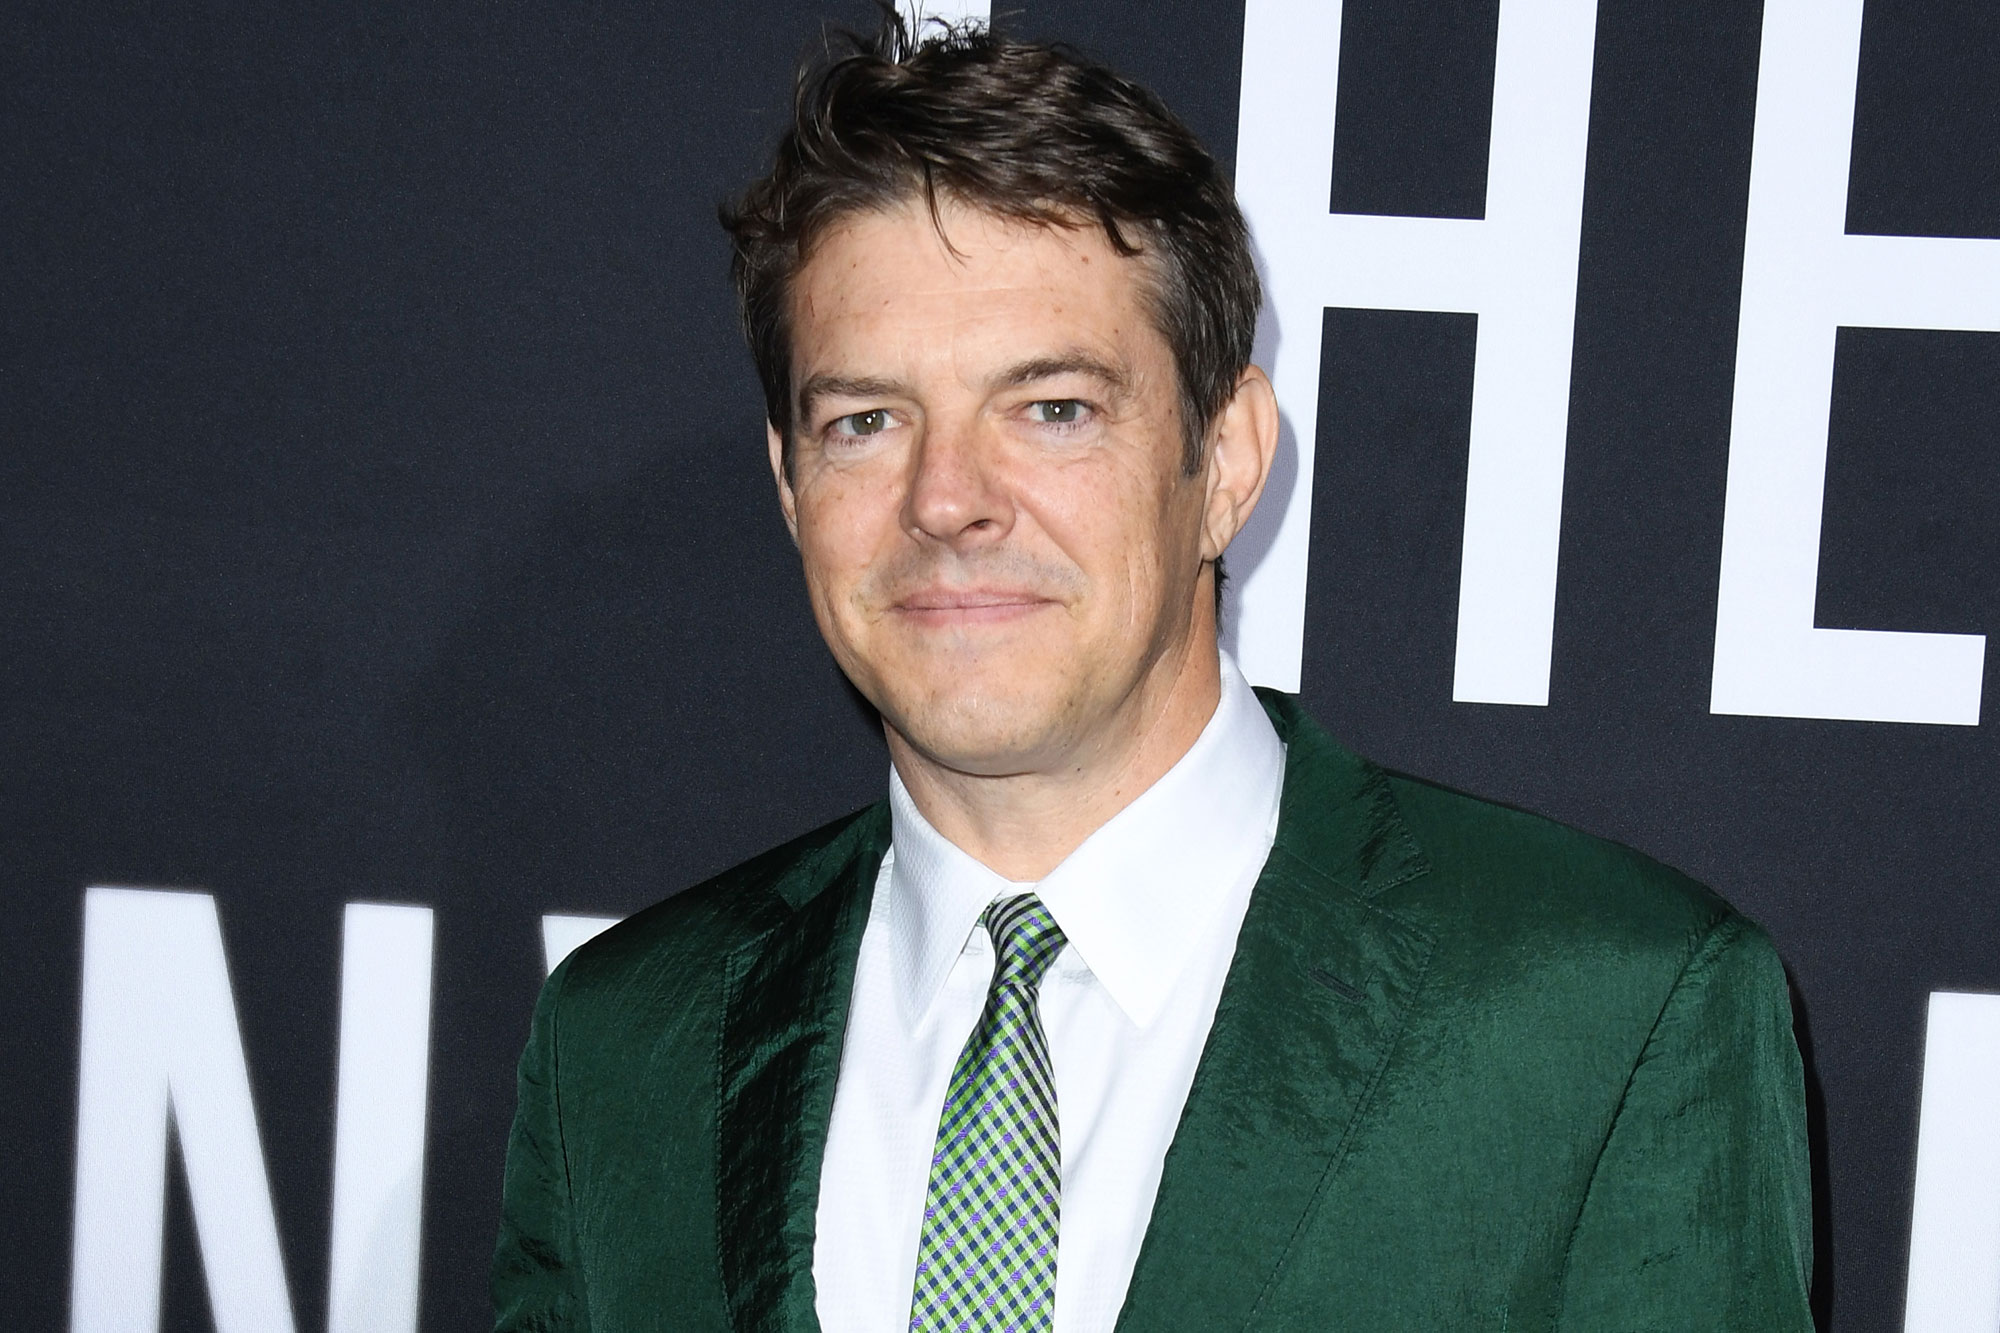 Who Is The Producers Of Halloween 2020 You Should Have Left producer Jason Blum talks haunted houses and